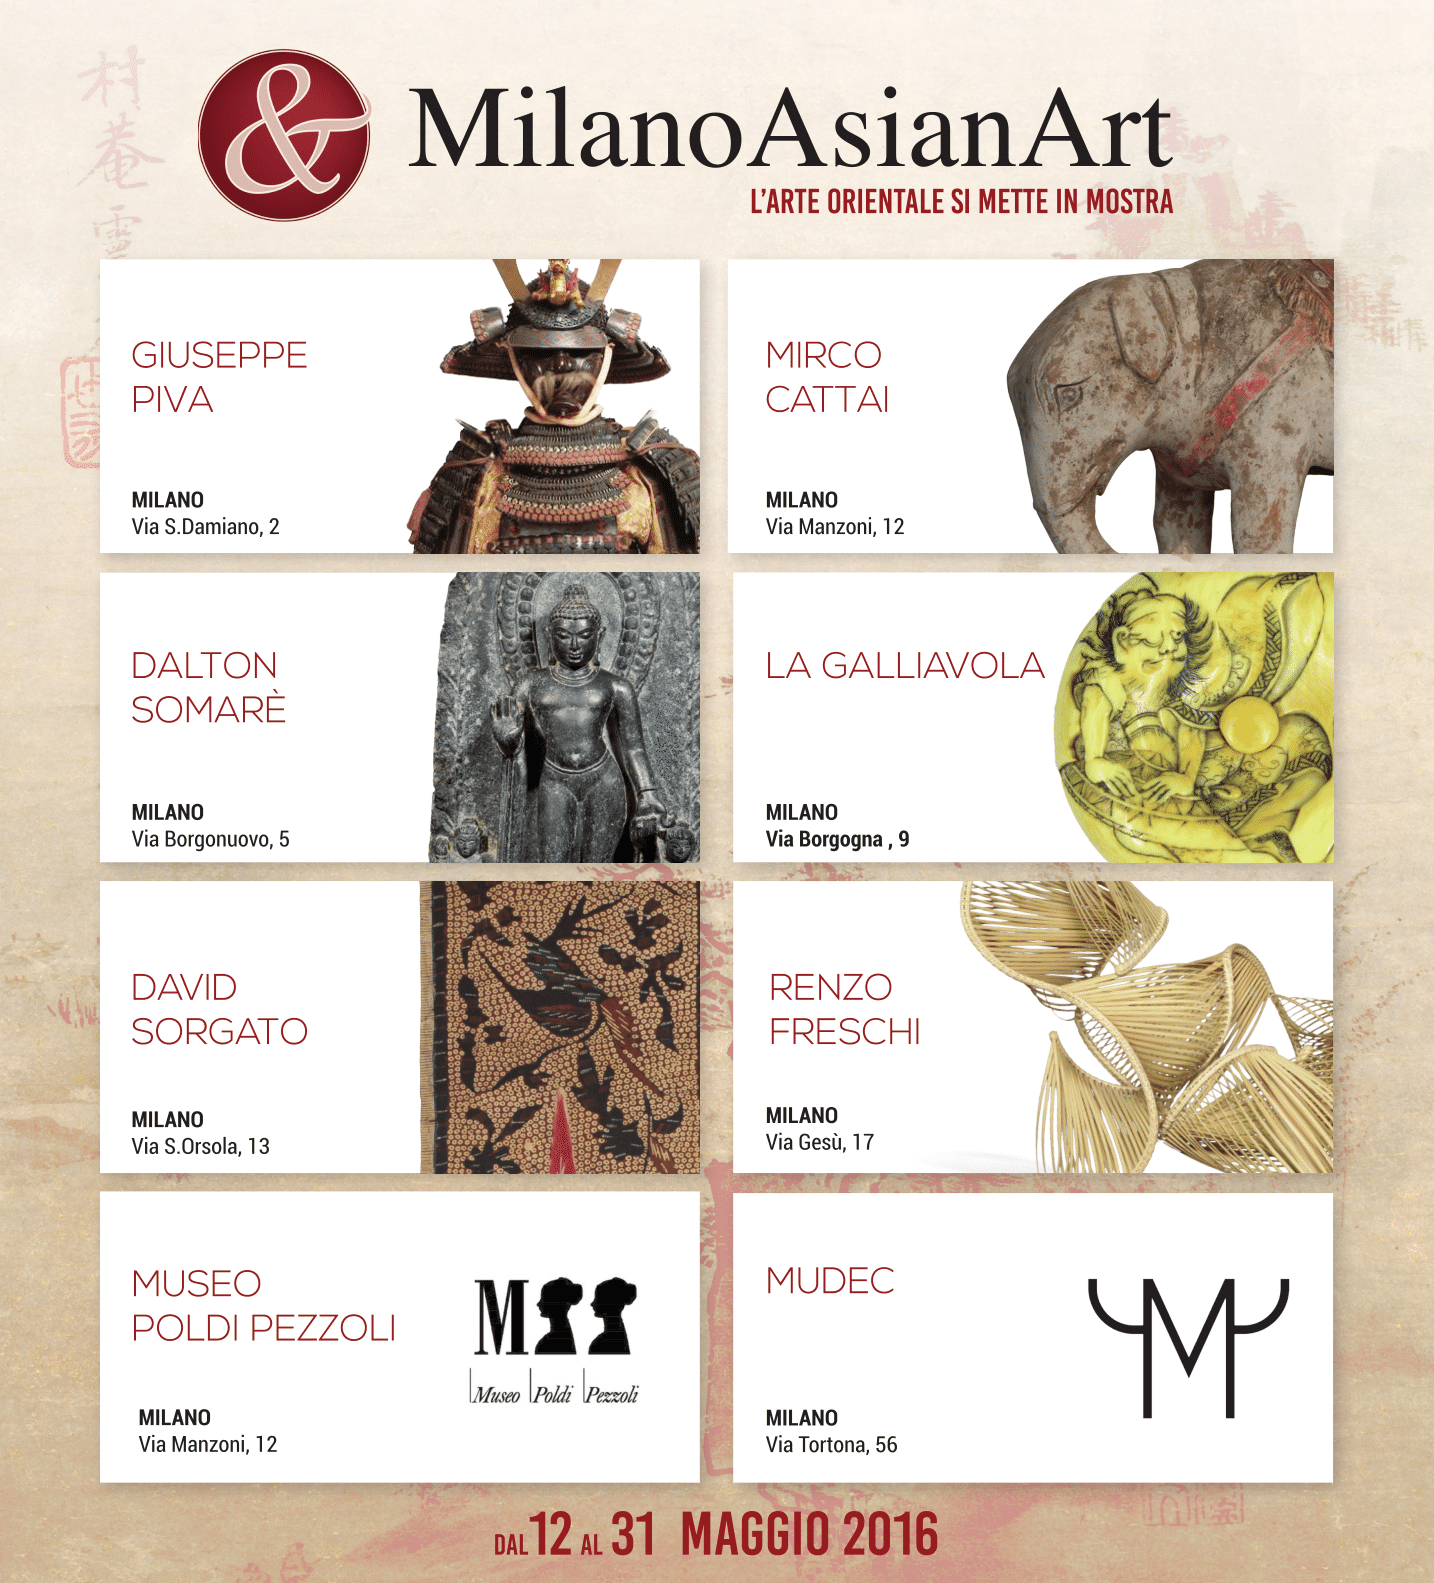 Milano Asian Art - La Galliavola